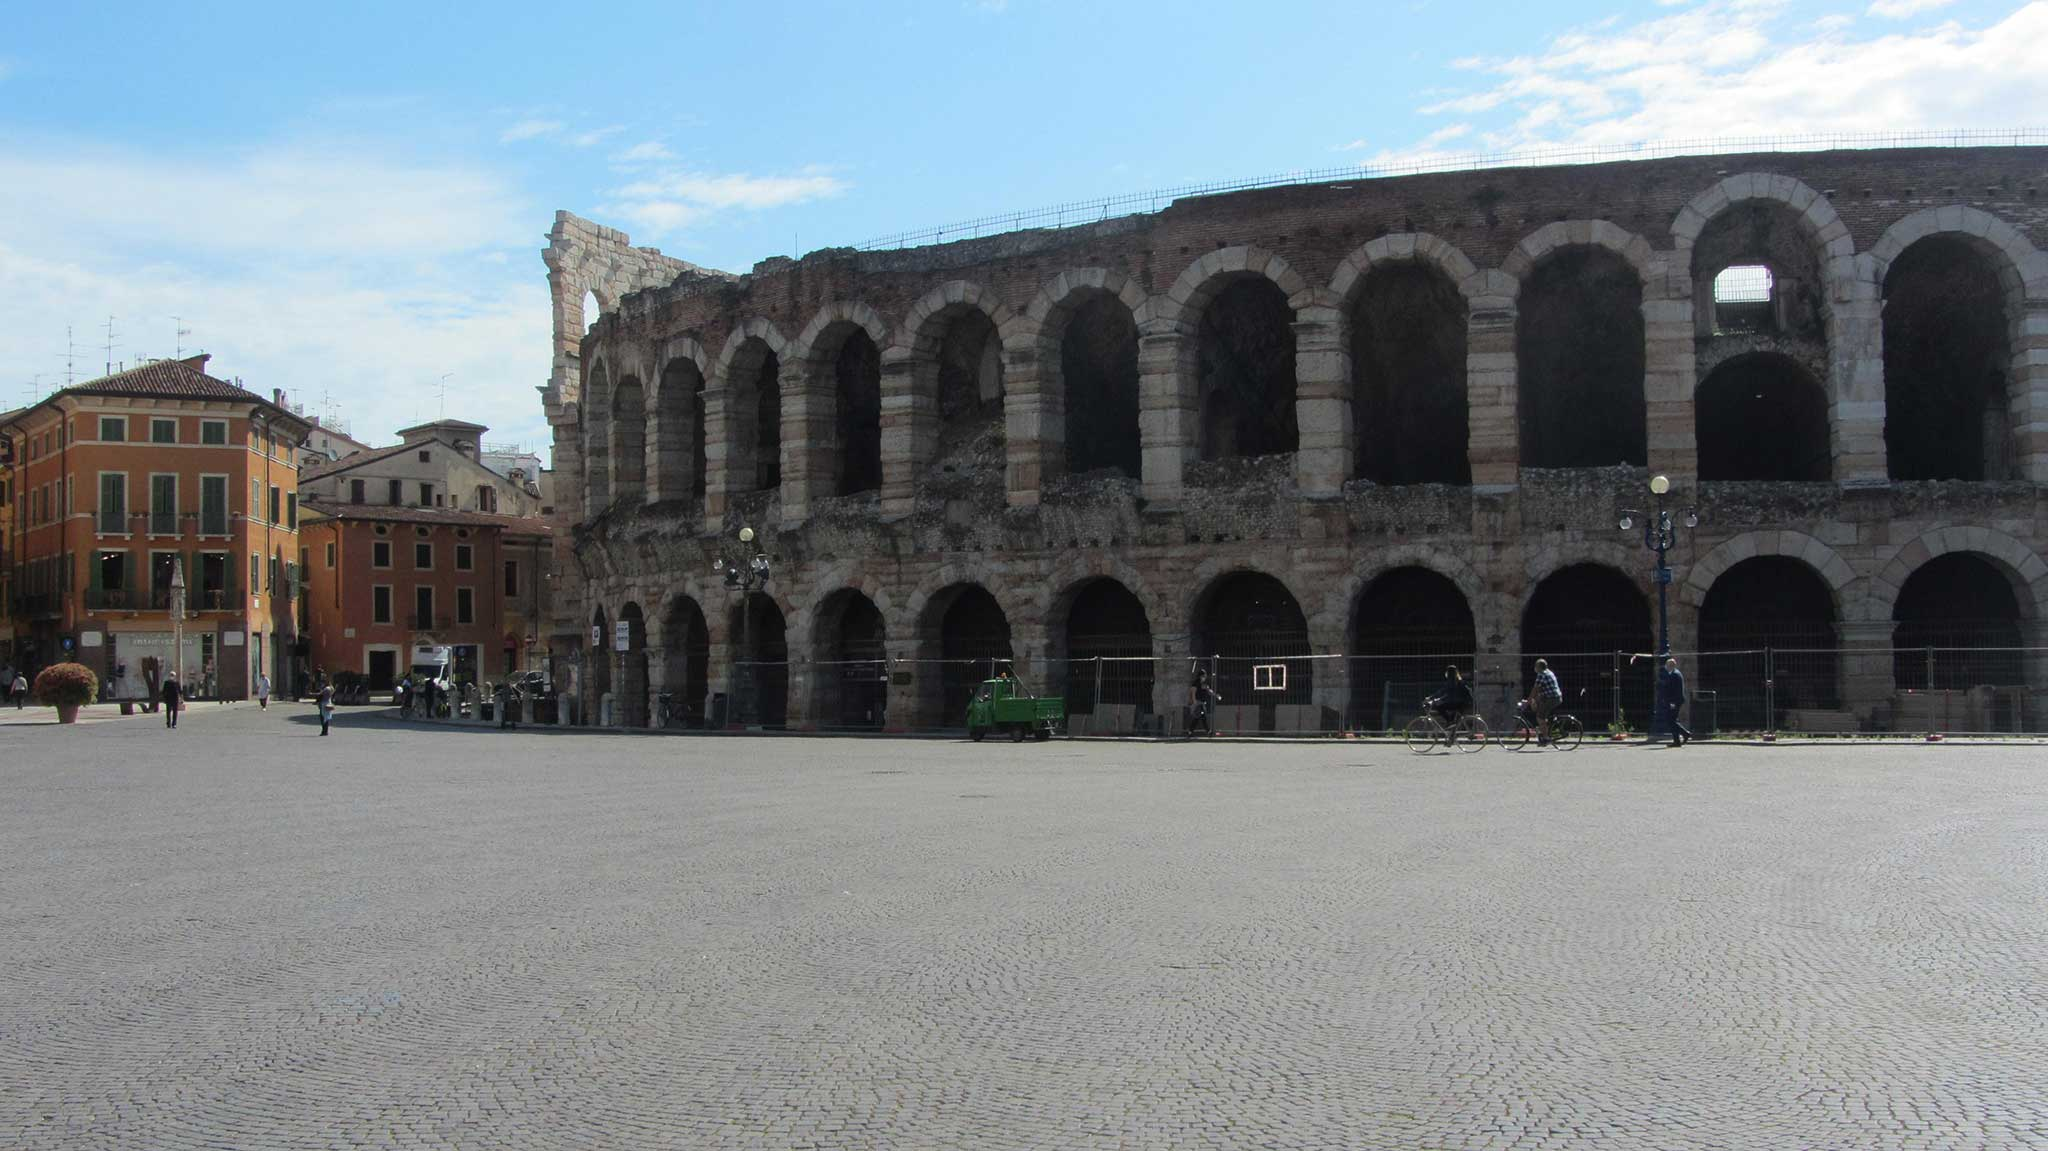 The Amphitheatre on Verona audio tour A stroll through the city of Romeo and Juliet